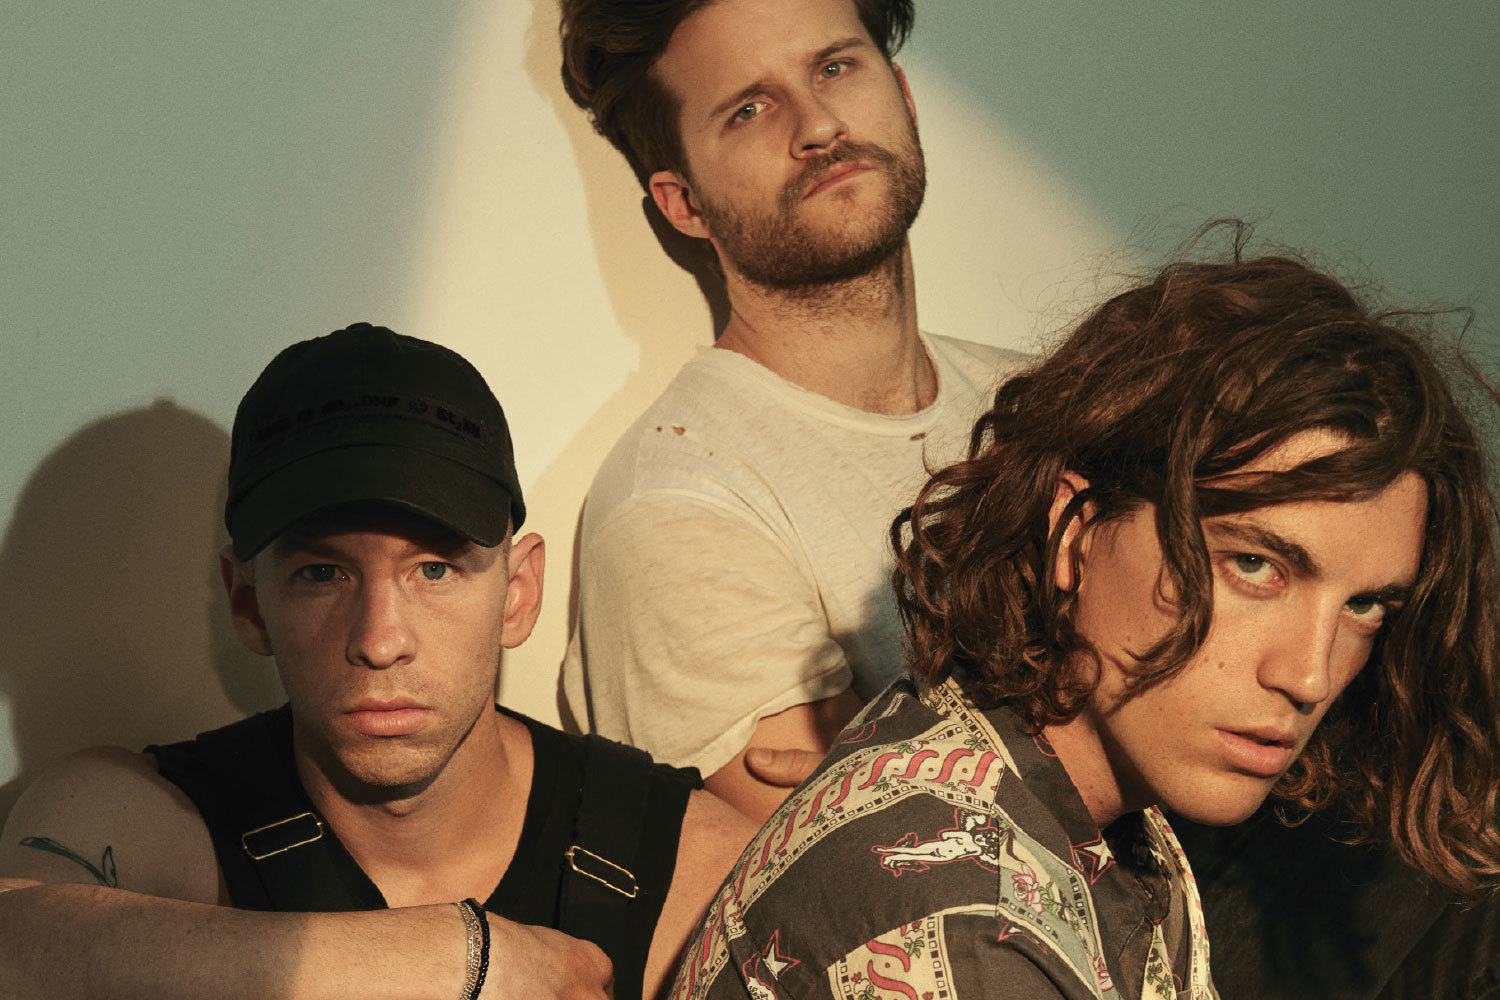 lany — indie pop usa r&b singapore asia philippines manila jakarta indonesia